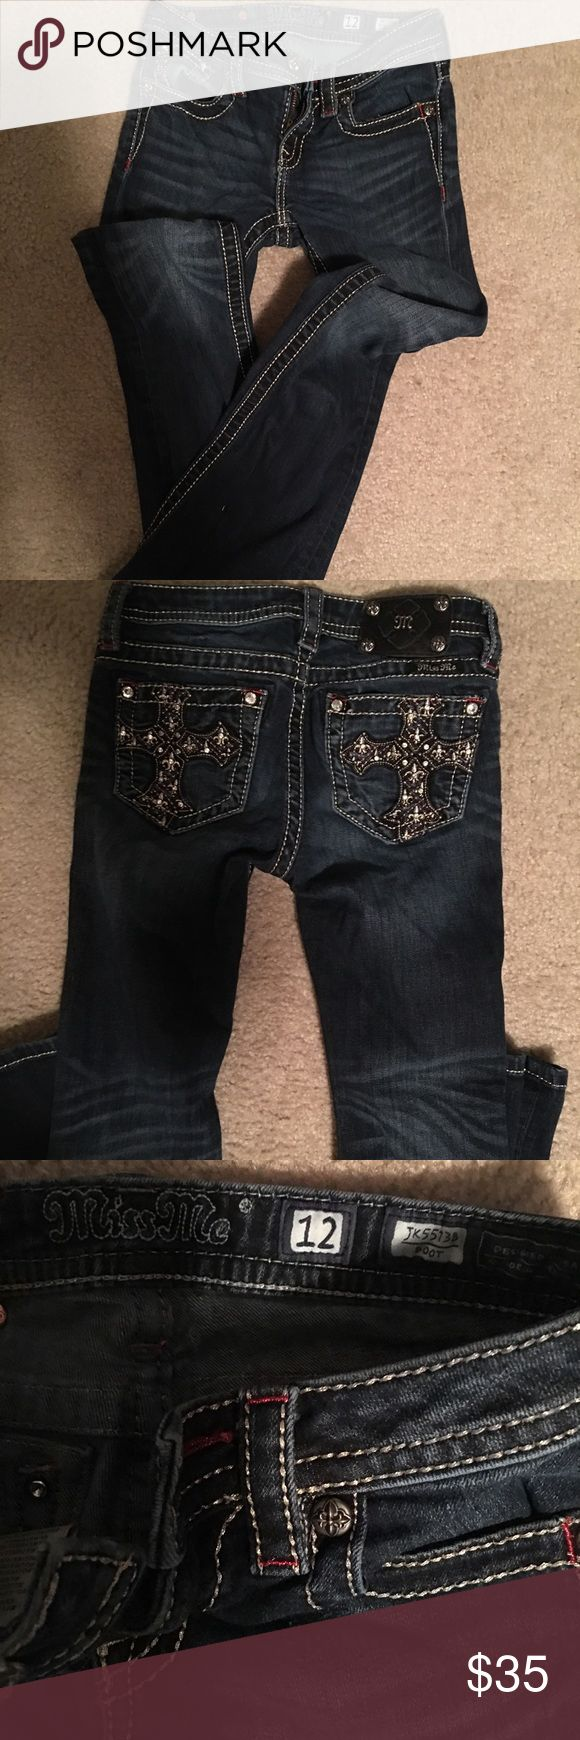 Little girl Miss Me jeans Little girl Miss Me boot cut jeans size 12.... Great condition, smoke free home. Miss Me Bottoms Jeans